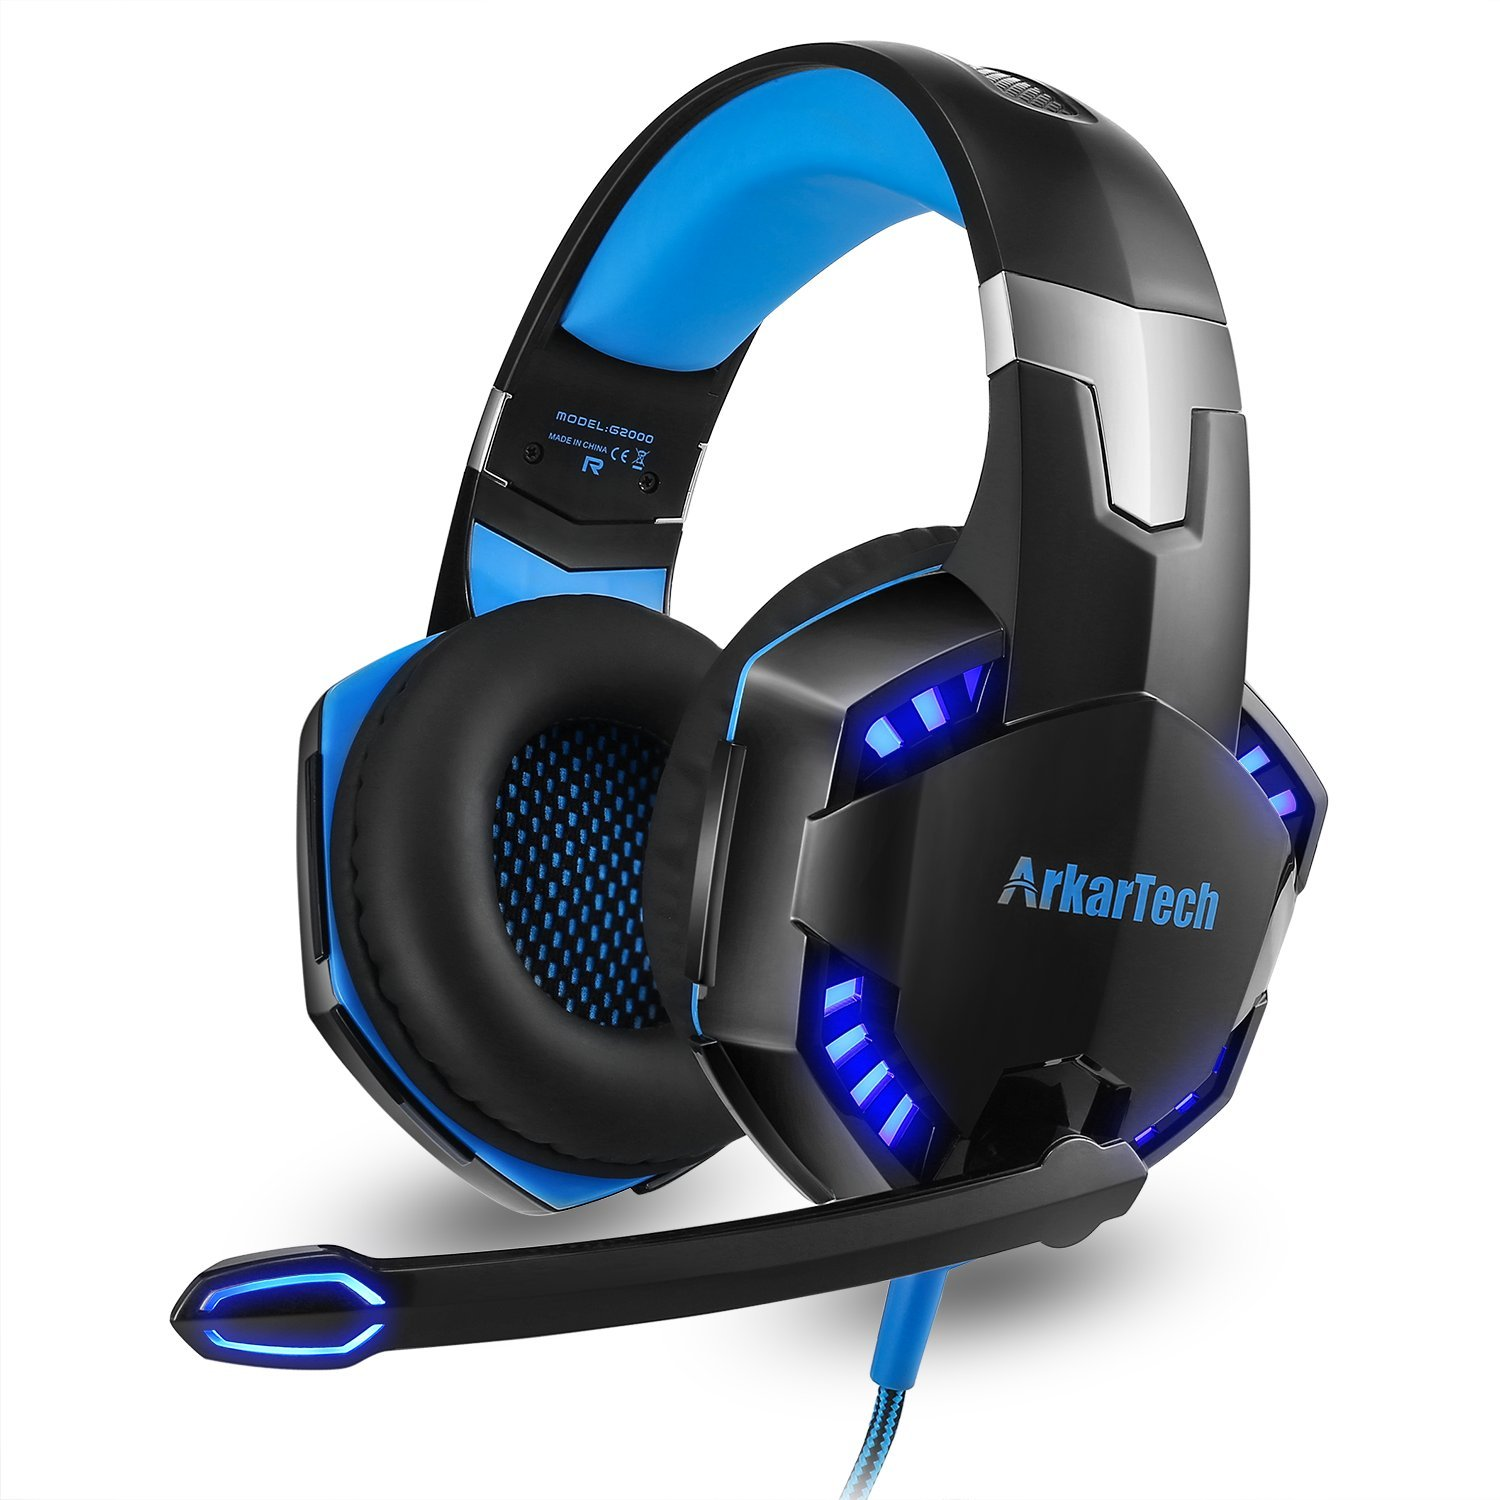 Gaming Headset for Xbox One, PS4, PC, Controller, ARKARTECH Noise Cancelling Over Ear Headphones with Mic, Bass Surround Soft Memory Earmuffs for Computer Laptop Switch Games by ARKARTECH (Image #2)